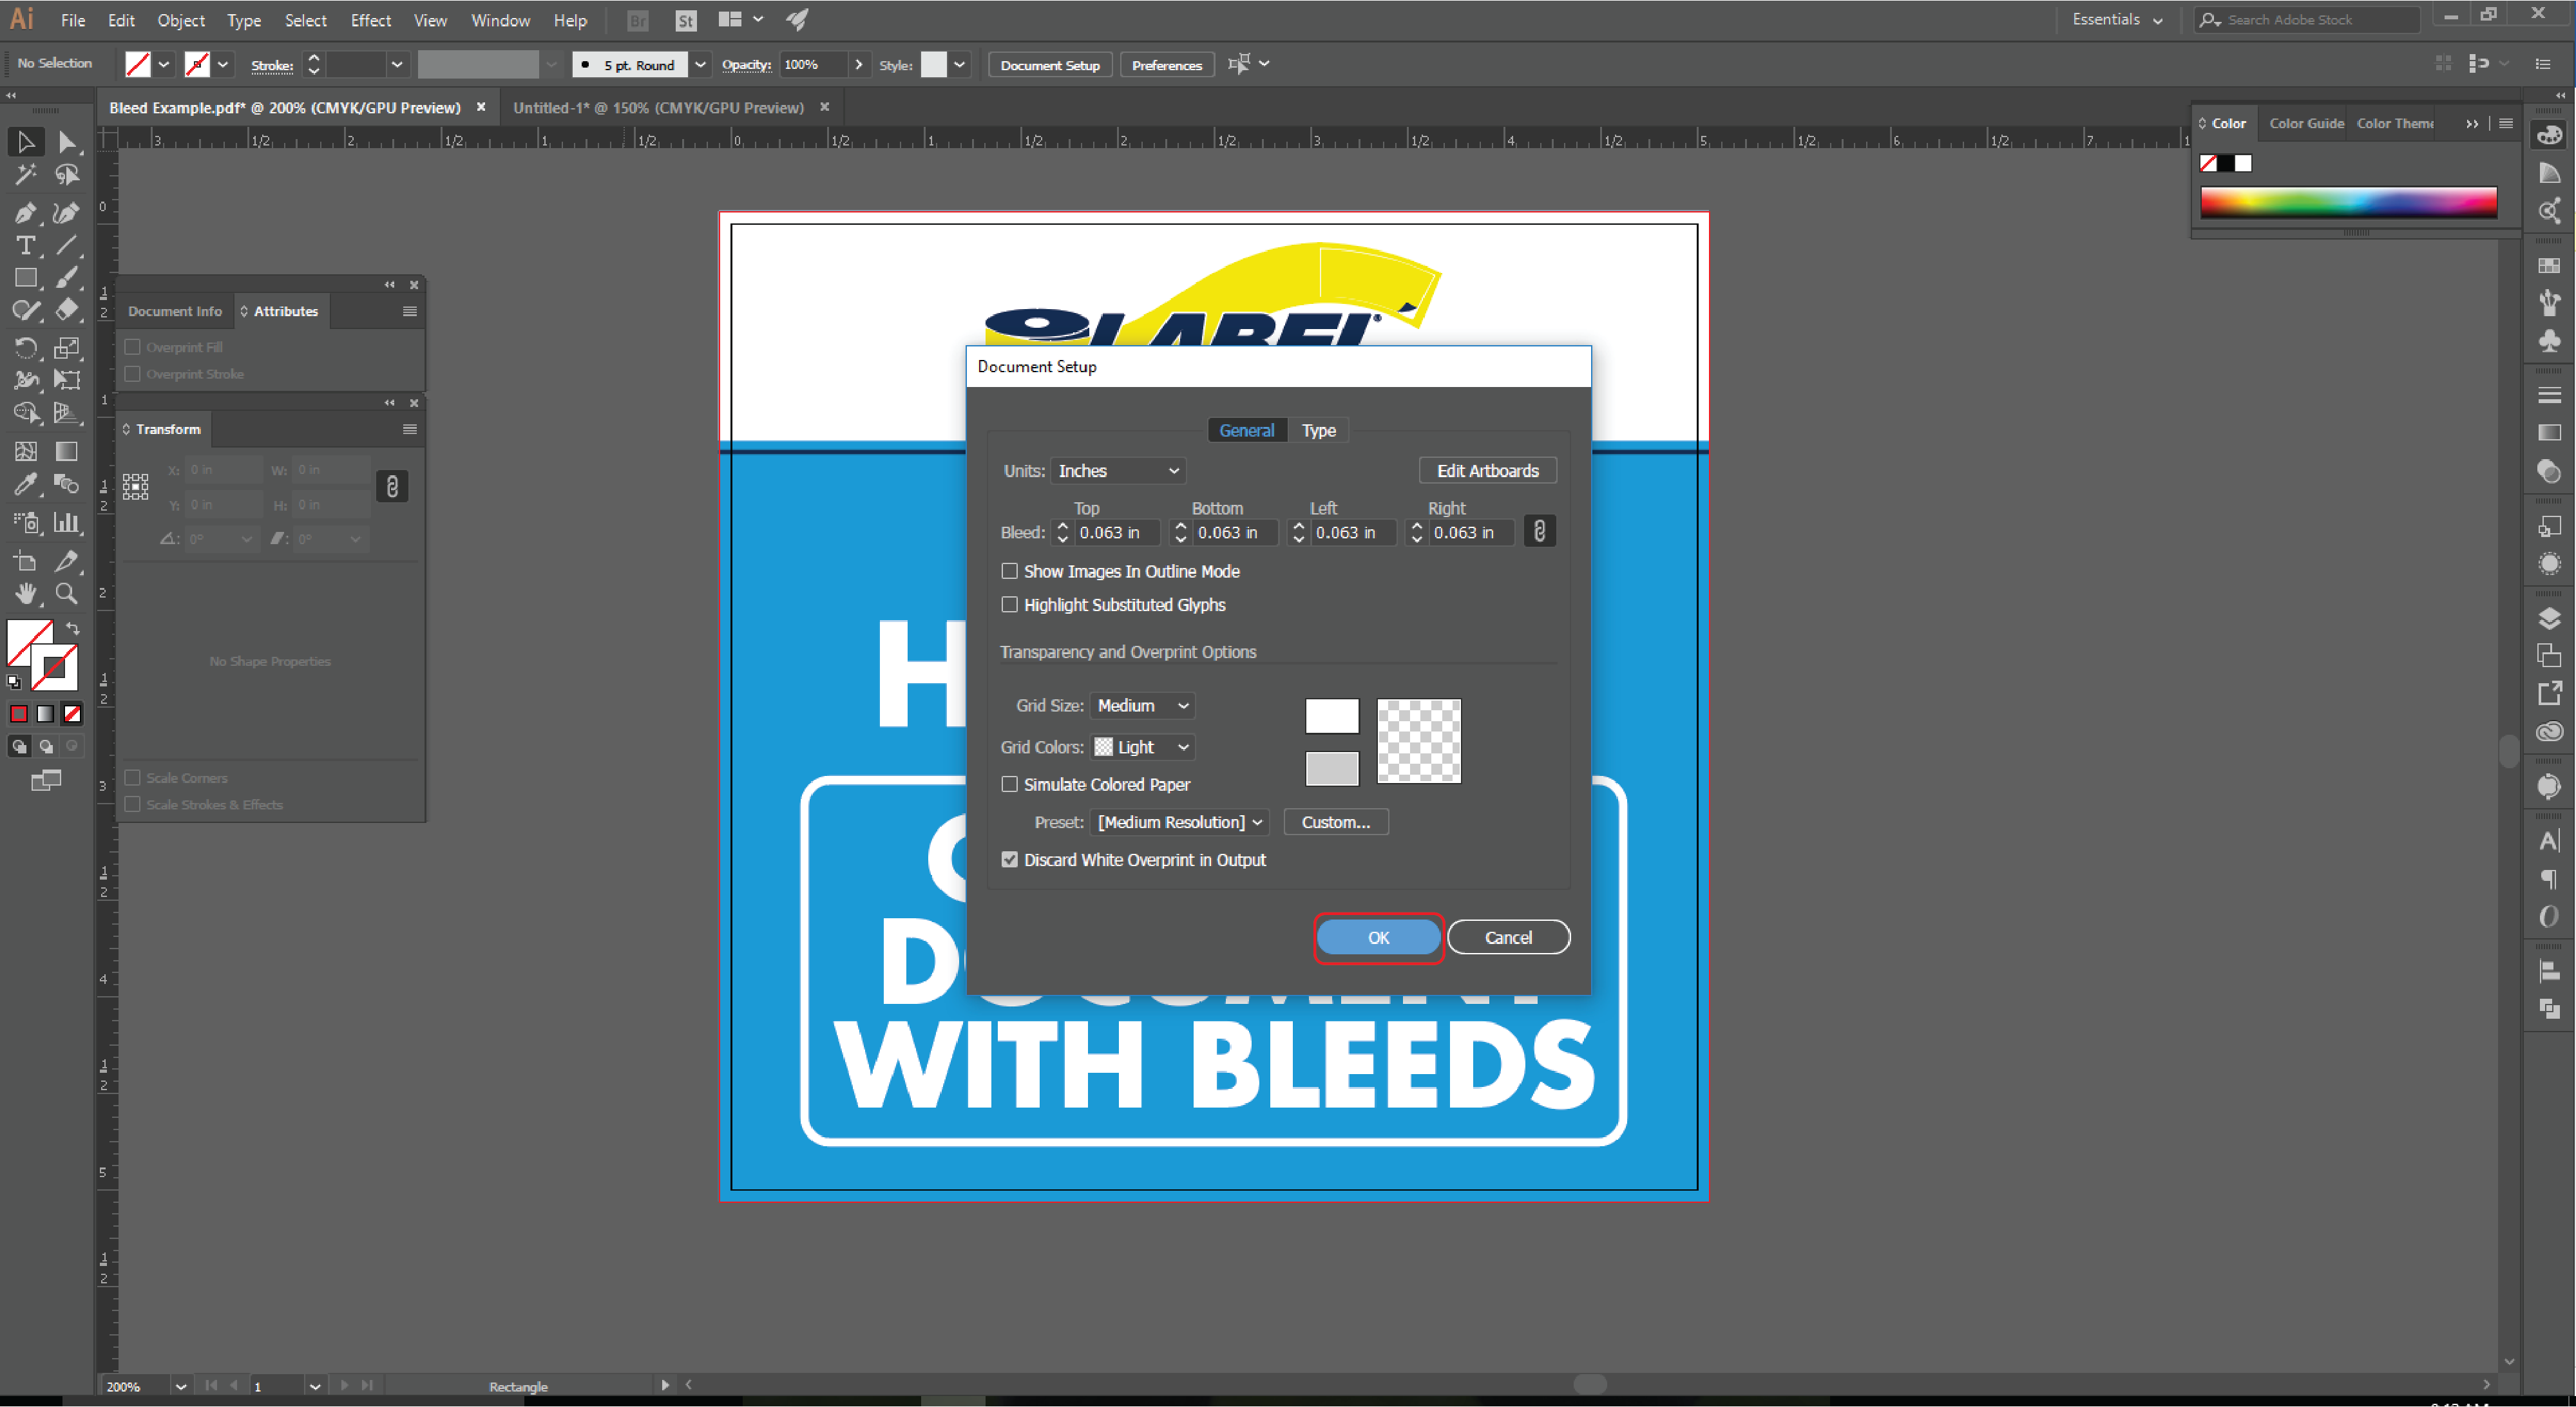 How to Add a Bleed to An Existing Document in Adobe Illustrator 4